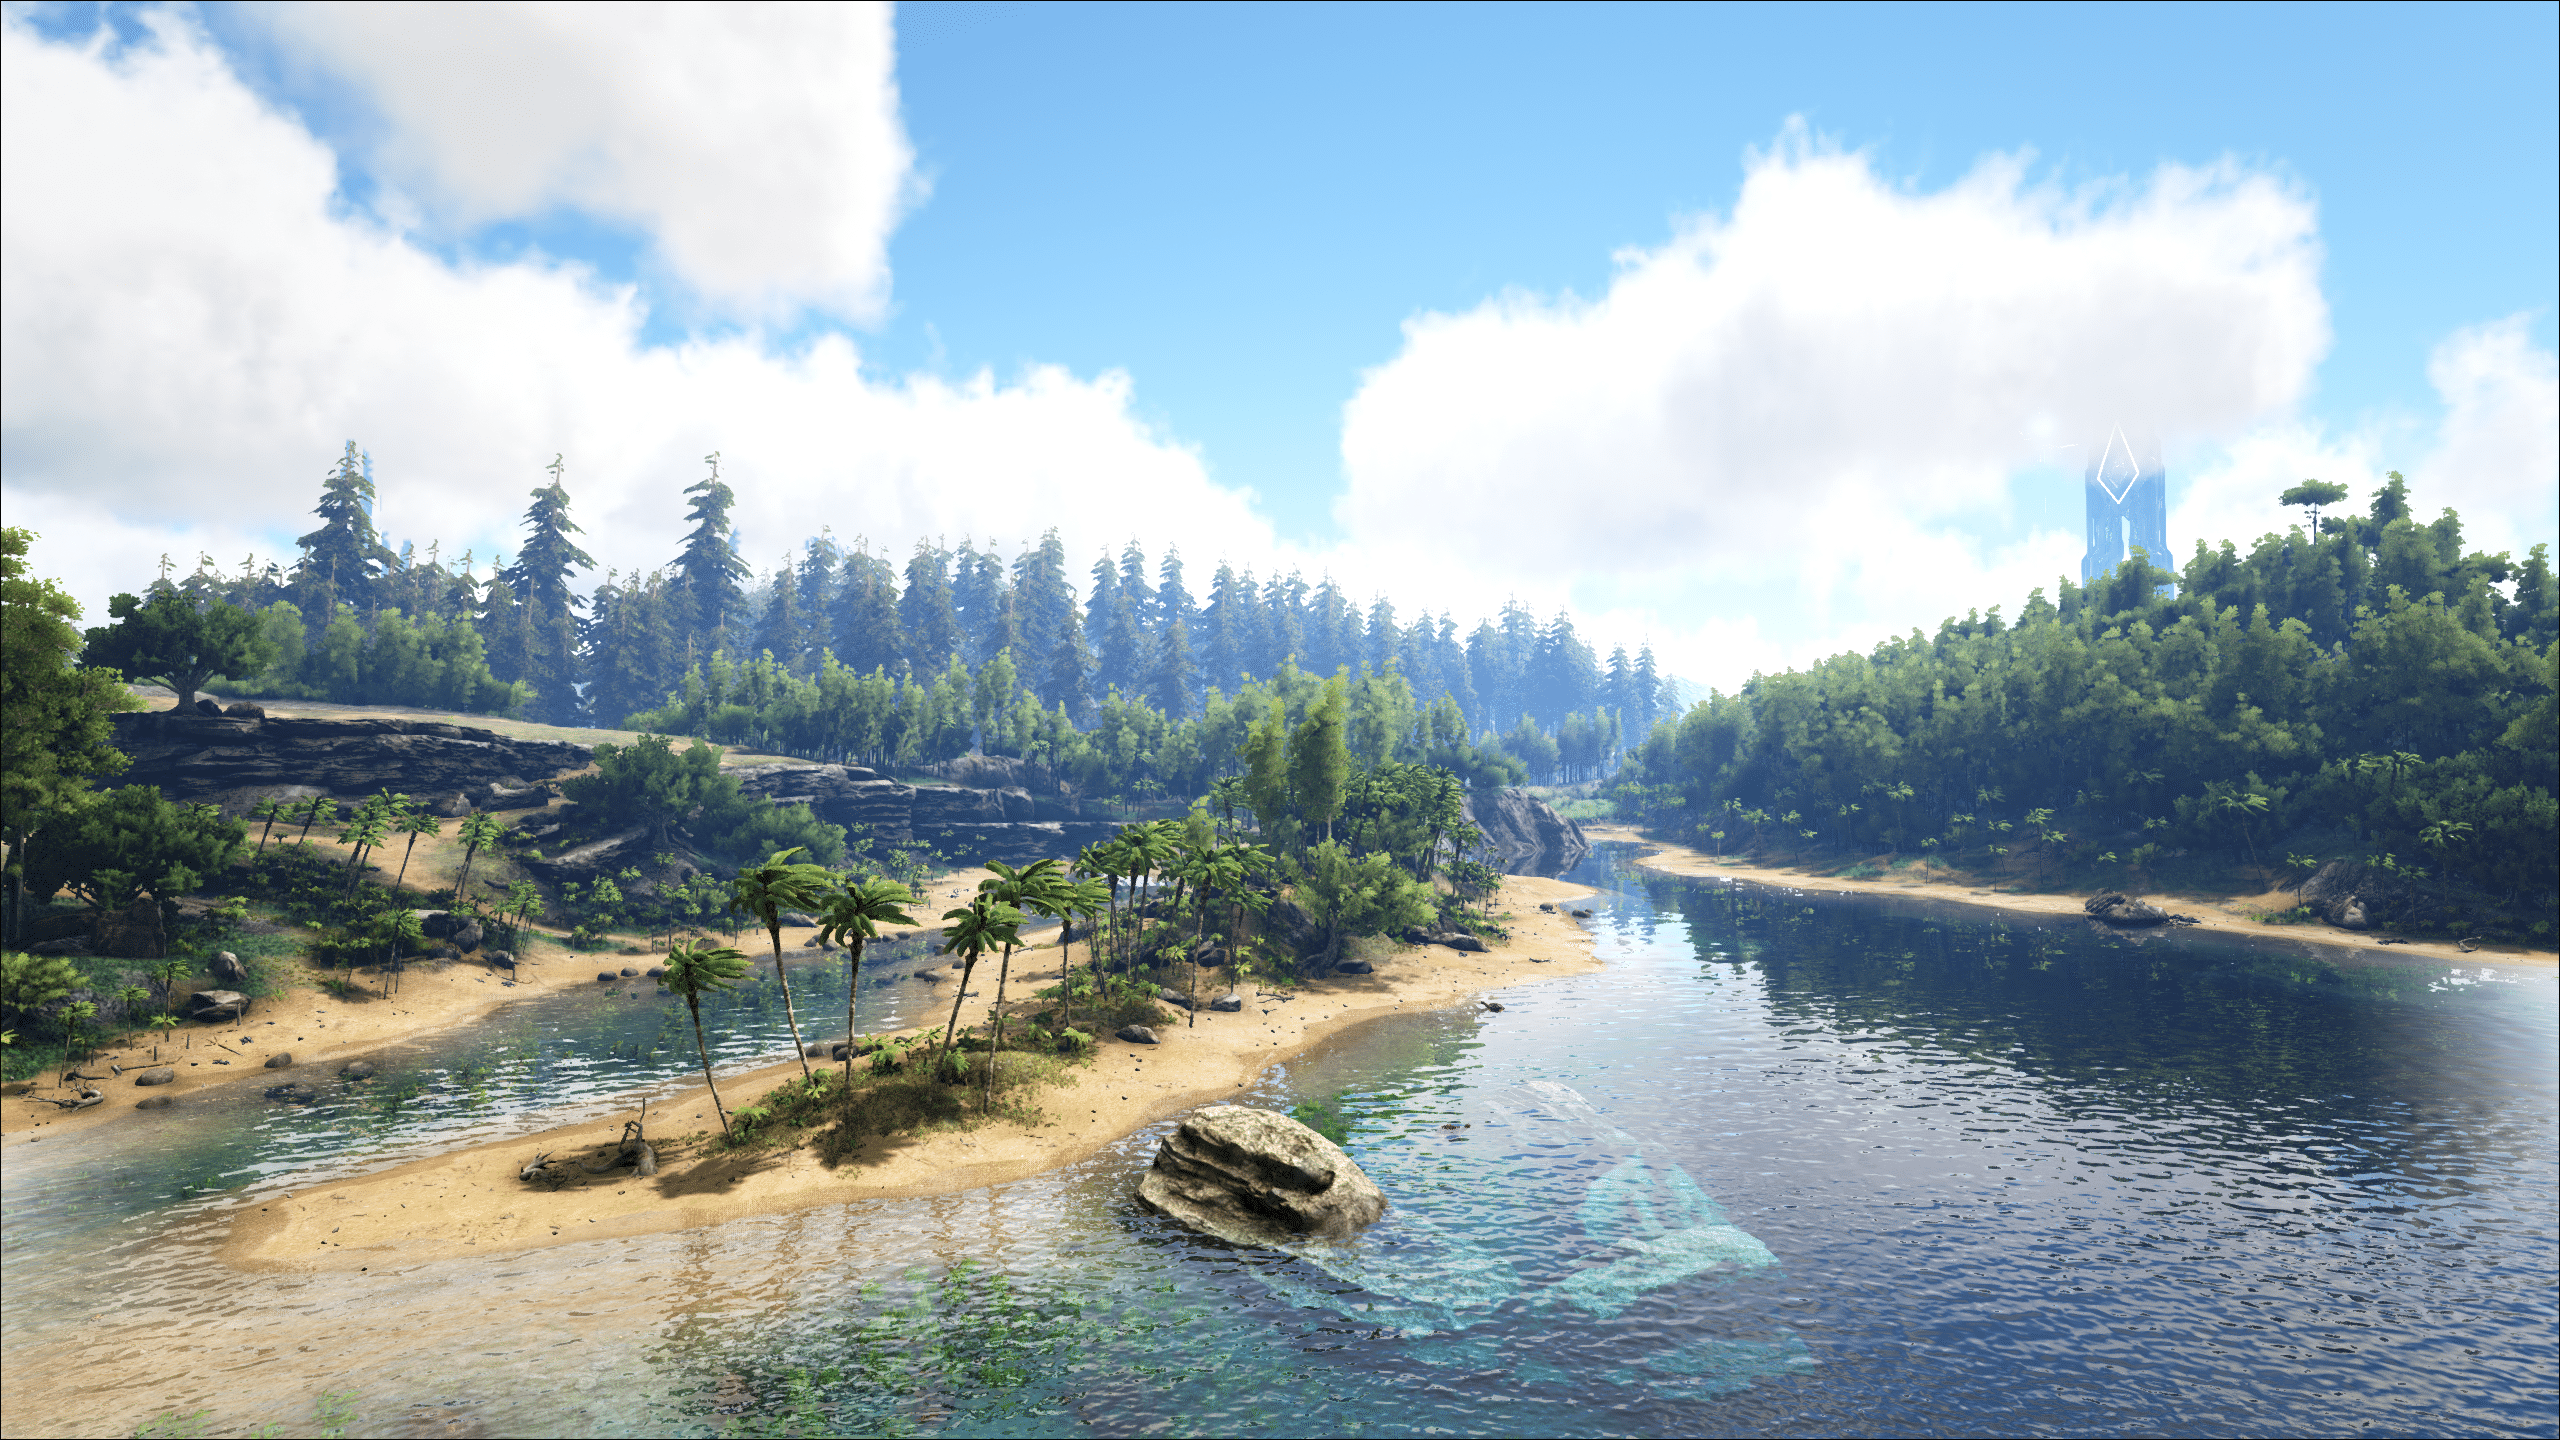 Ark: The Island - Ocean View